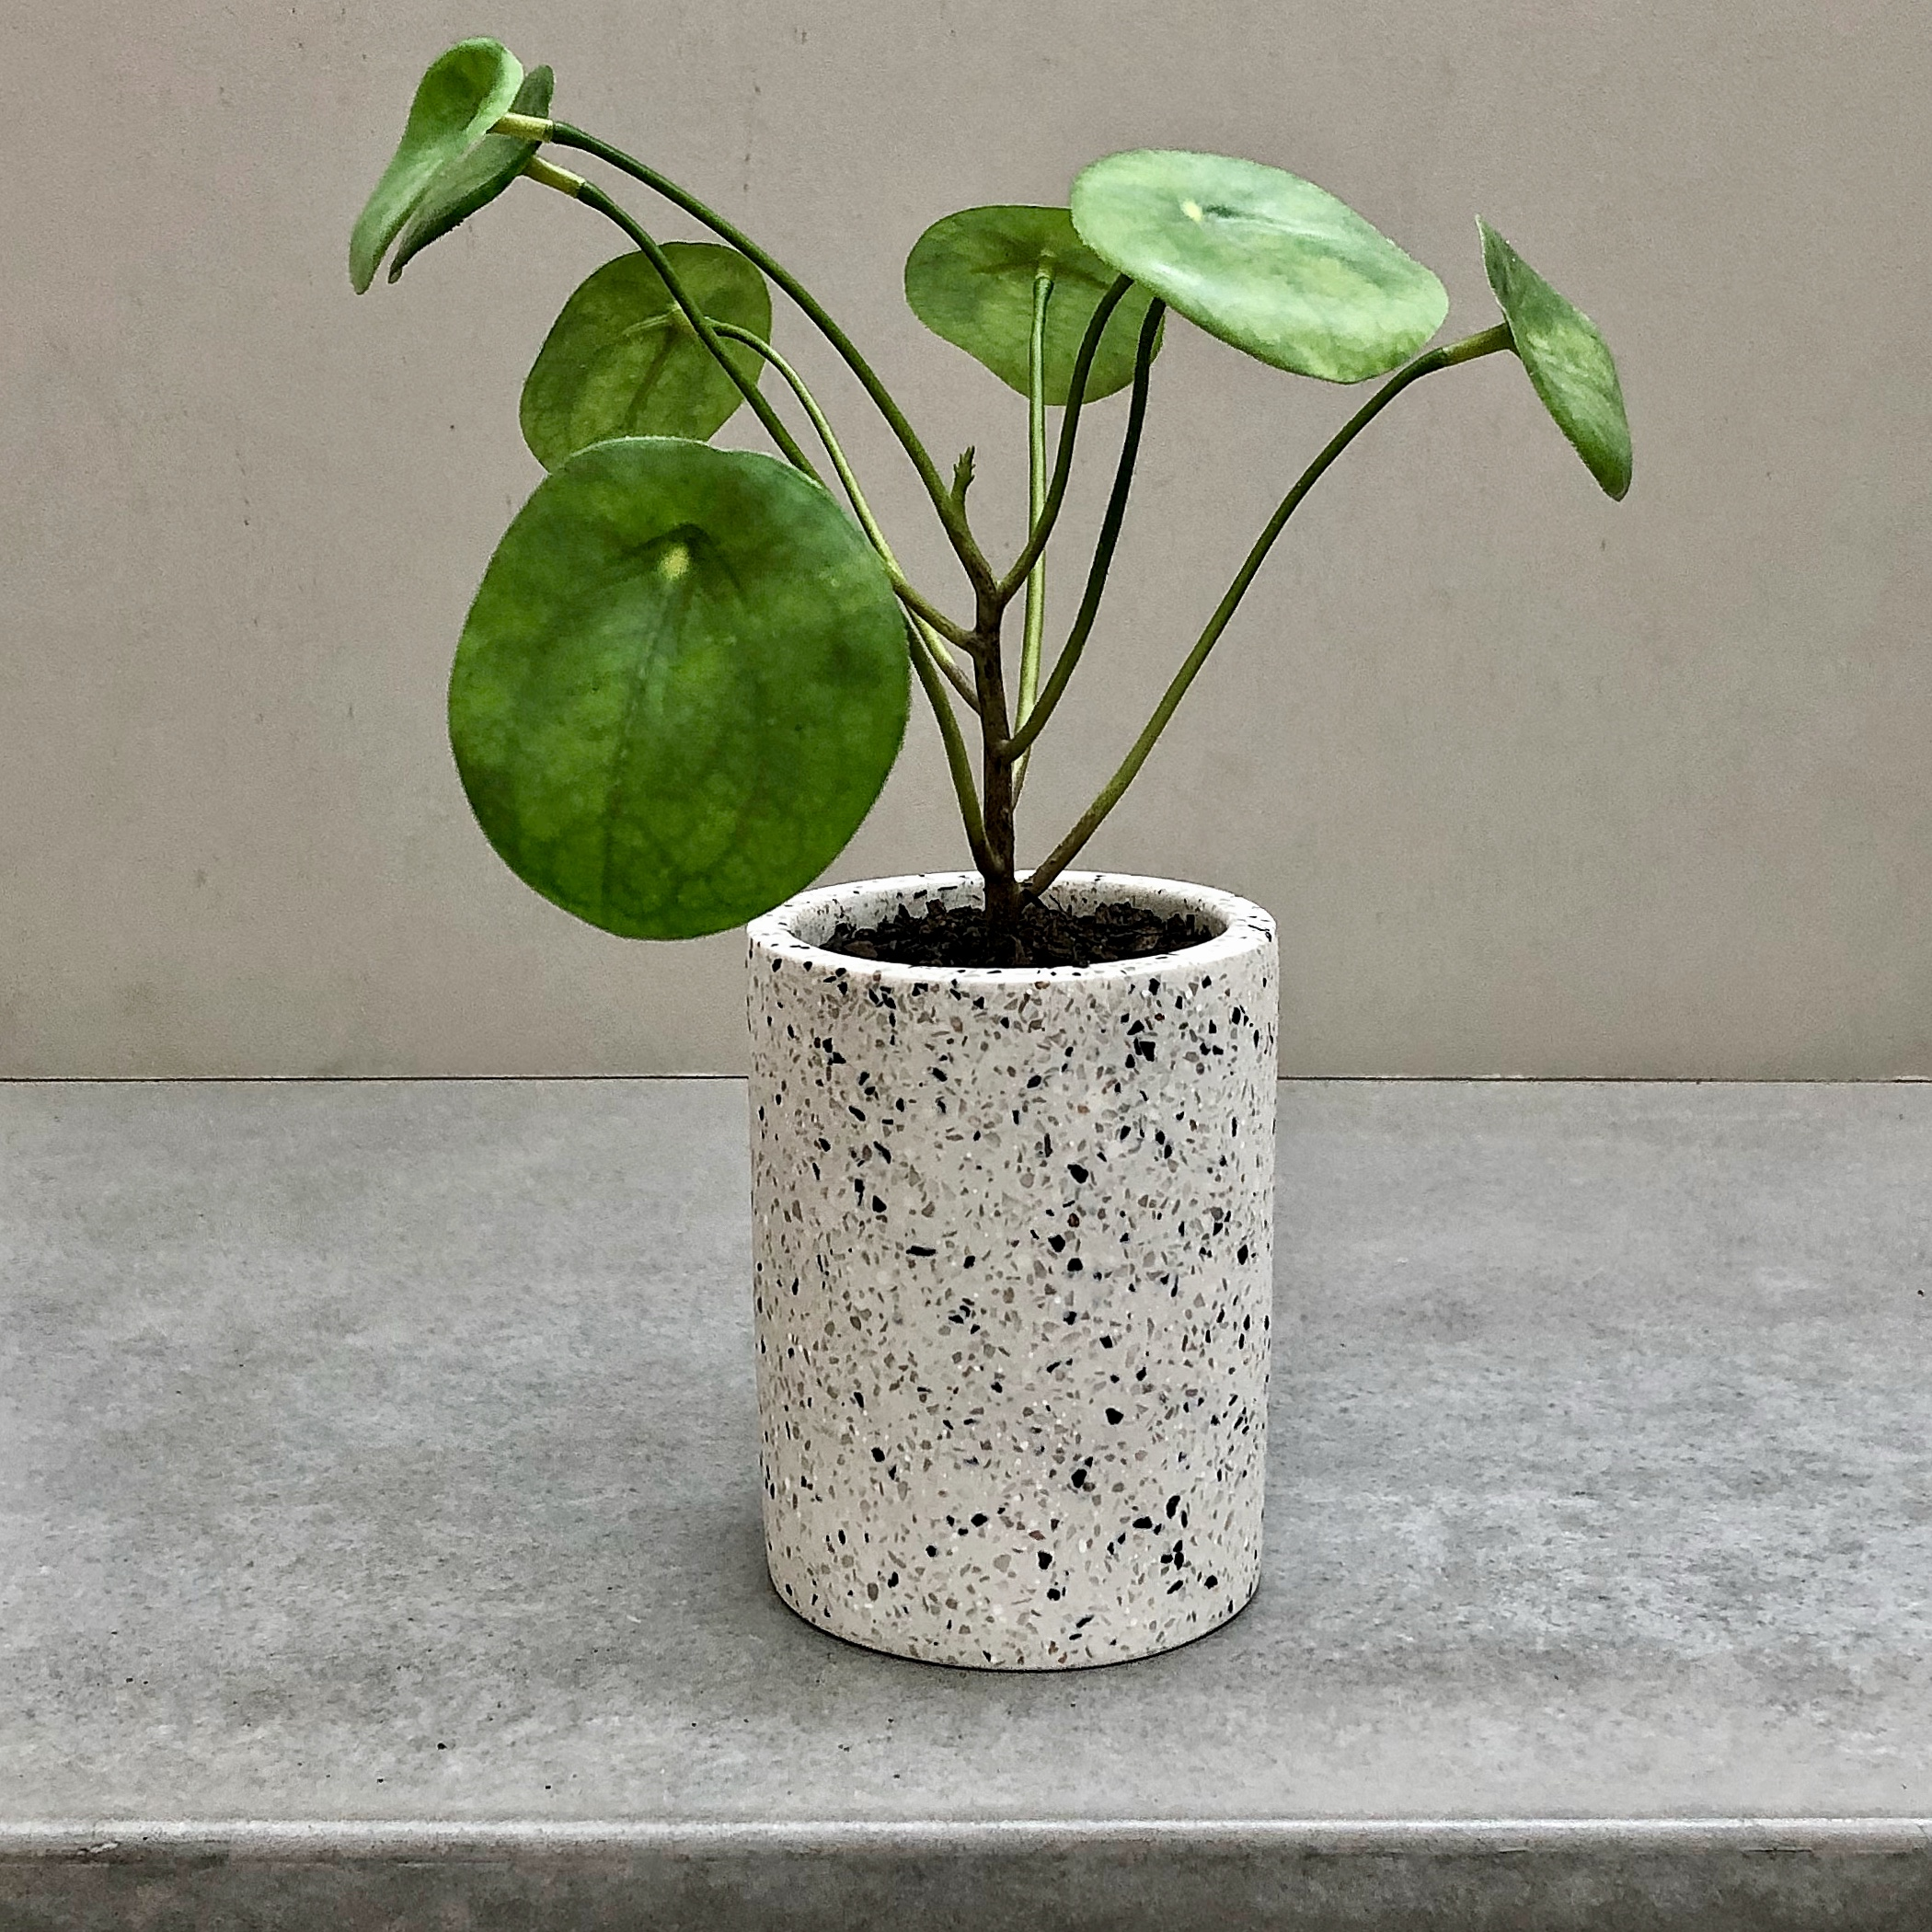 The Ideal Gift - Stuck on ideas for a gift ? Our range of potted faux plants make the ideal present for any occasion; house warming, wedding/engagement, newborn parents, birthday, anniversary just to name a few.